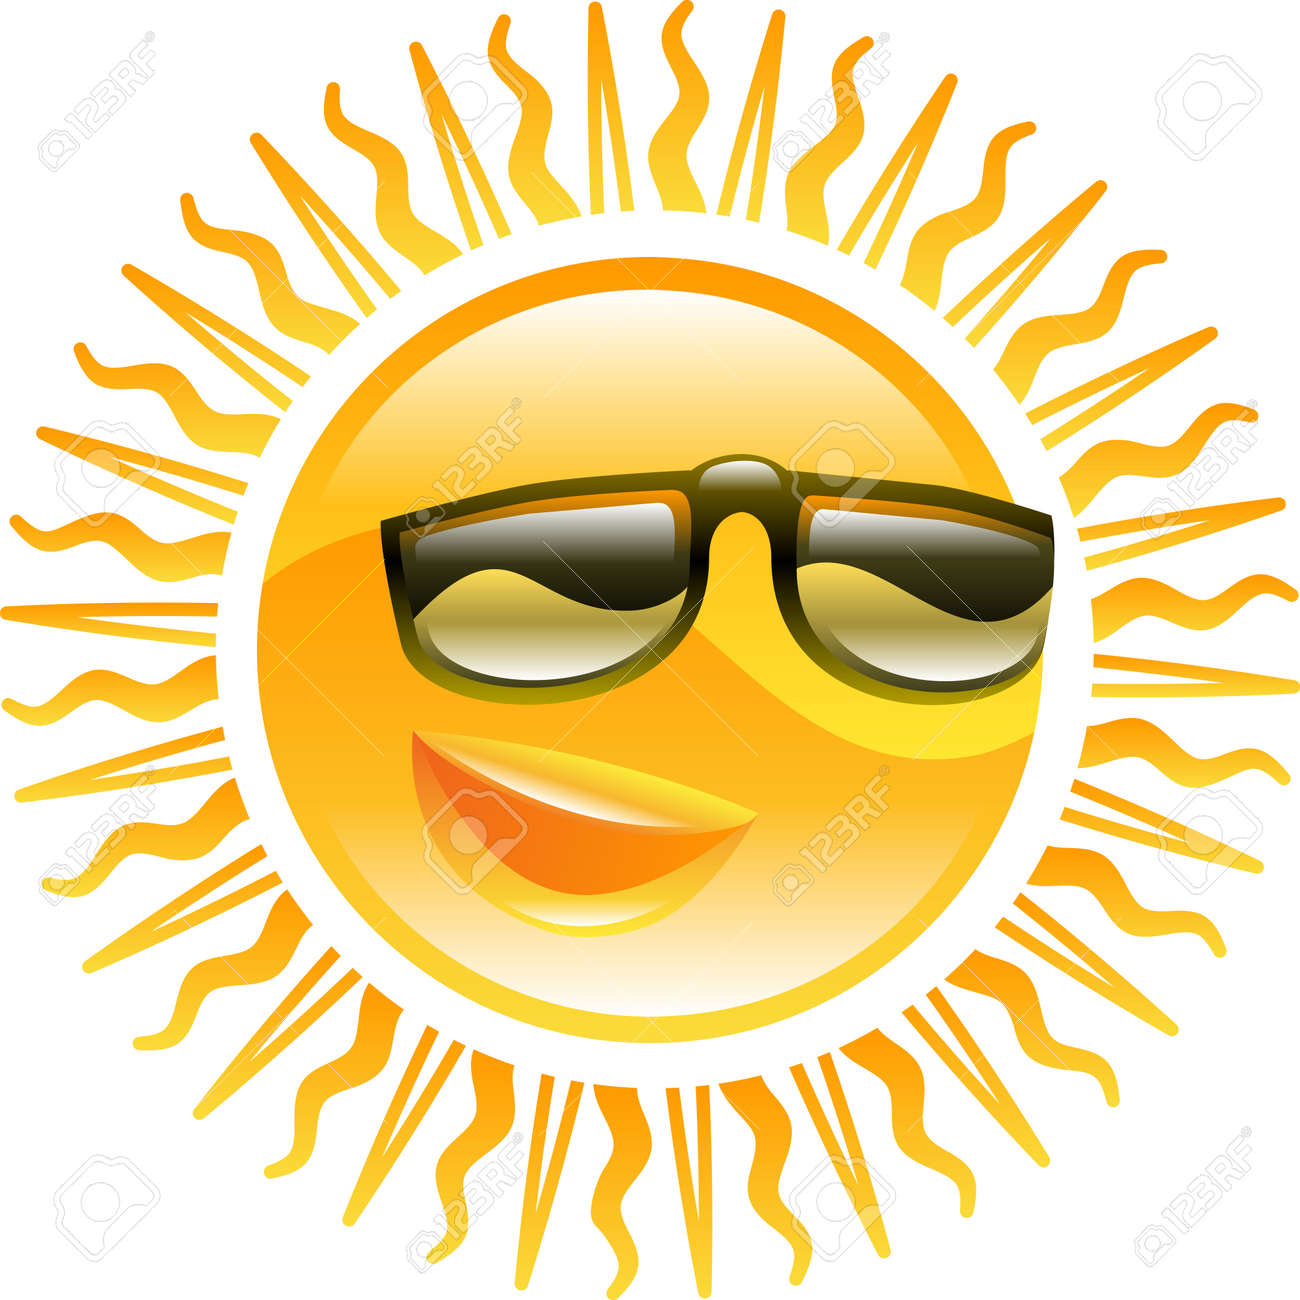 Smiling sun with sunglasses - A Smiling Sun With Sunglasses Icon Illustration Stock Vector 4574315